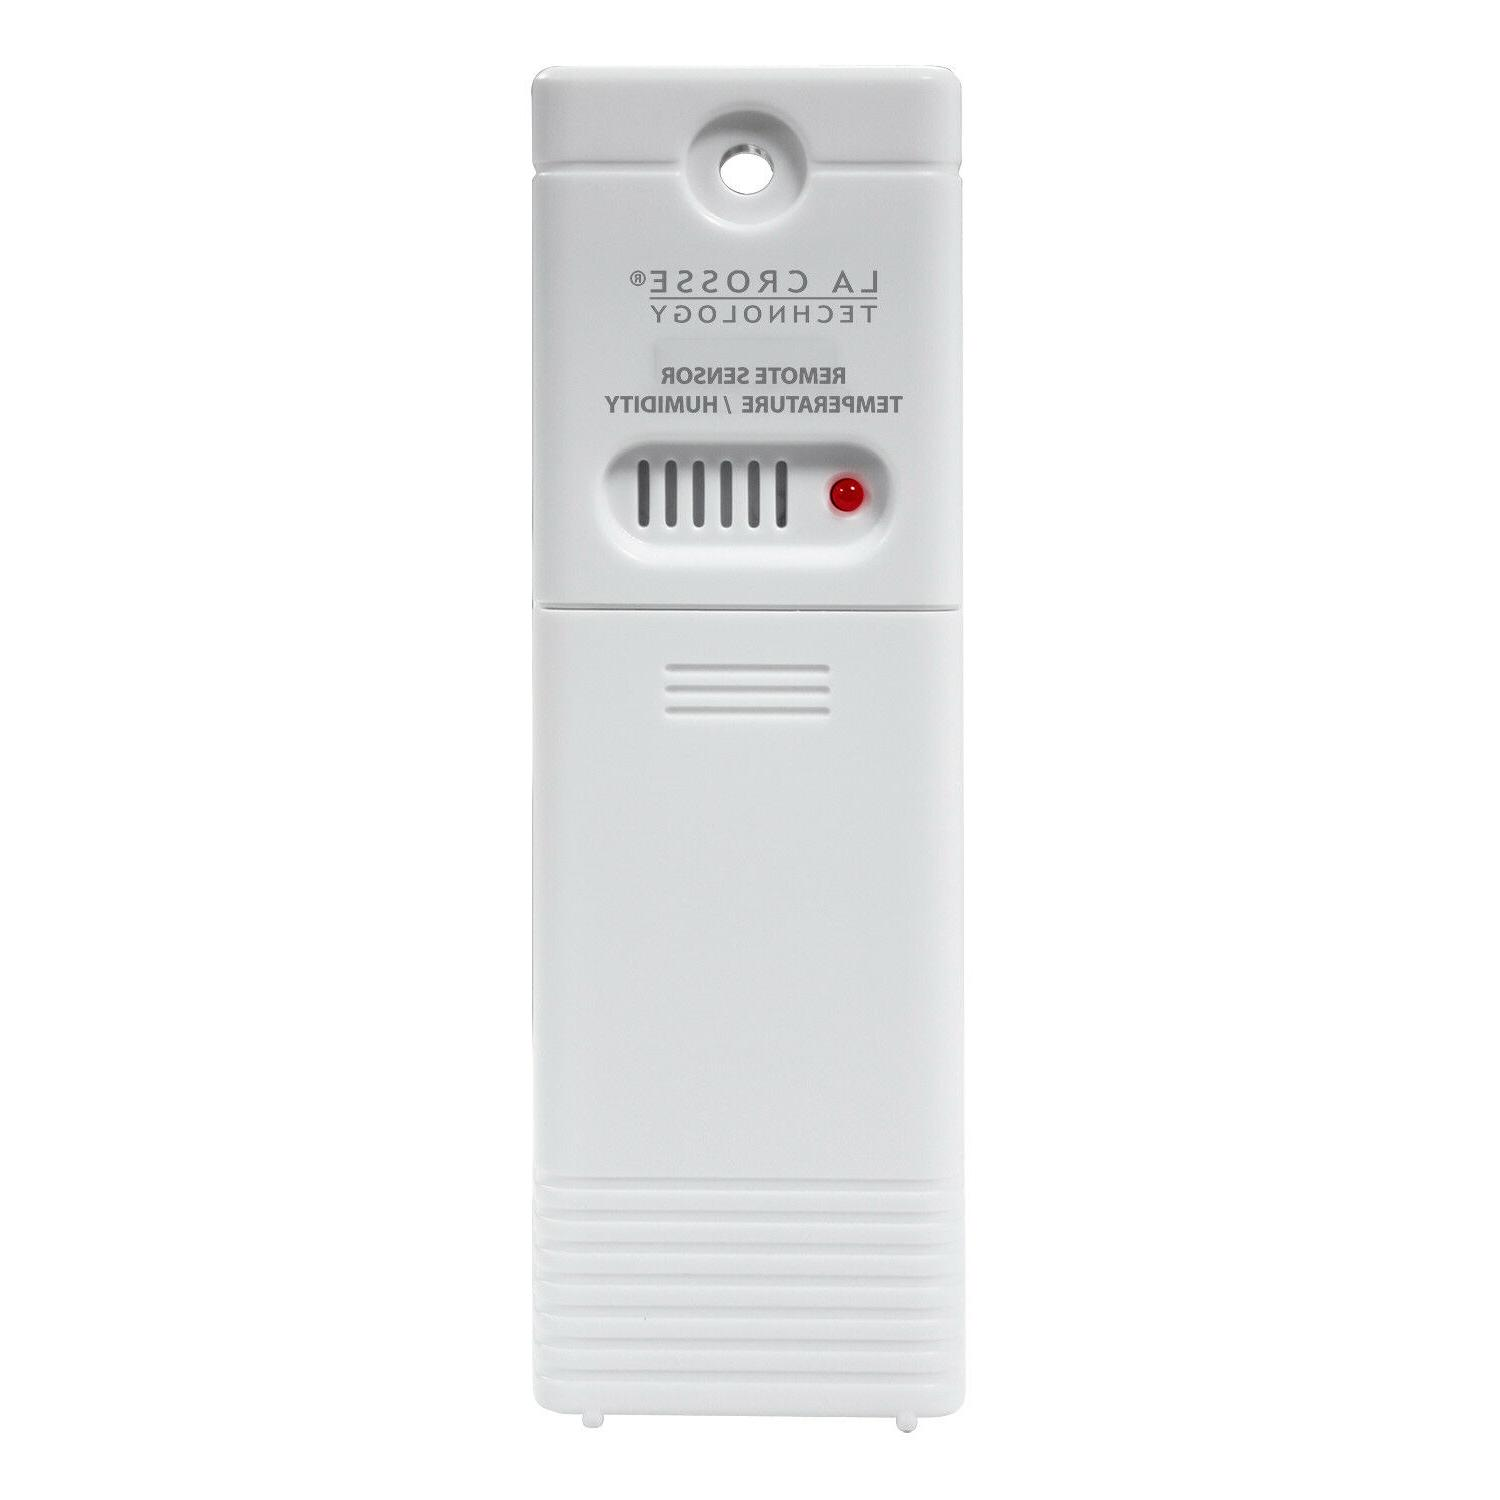 tx141th bch wireless temperature humidity